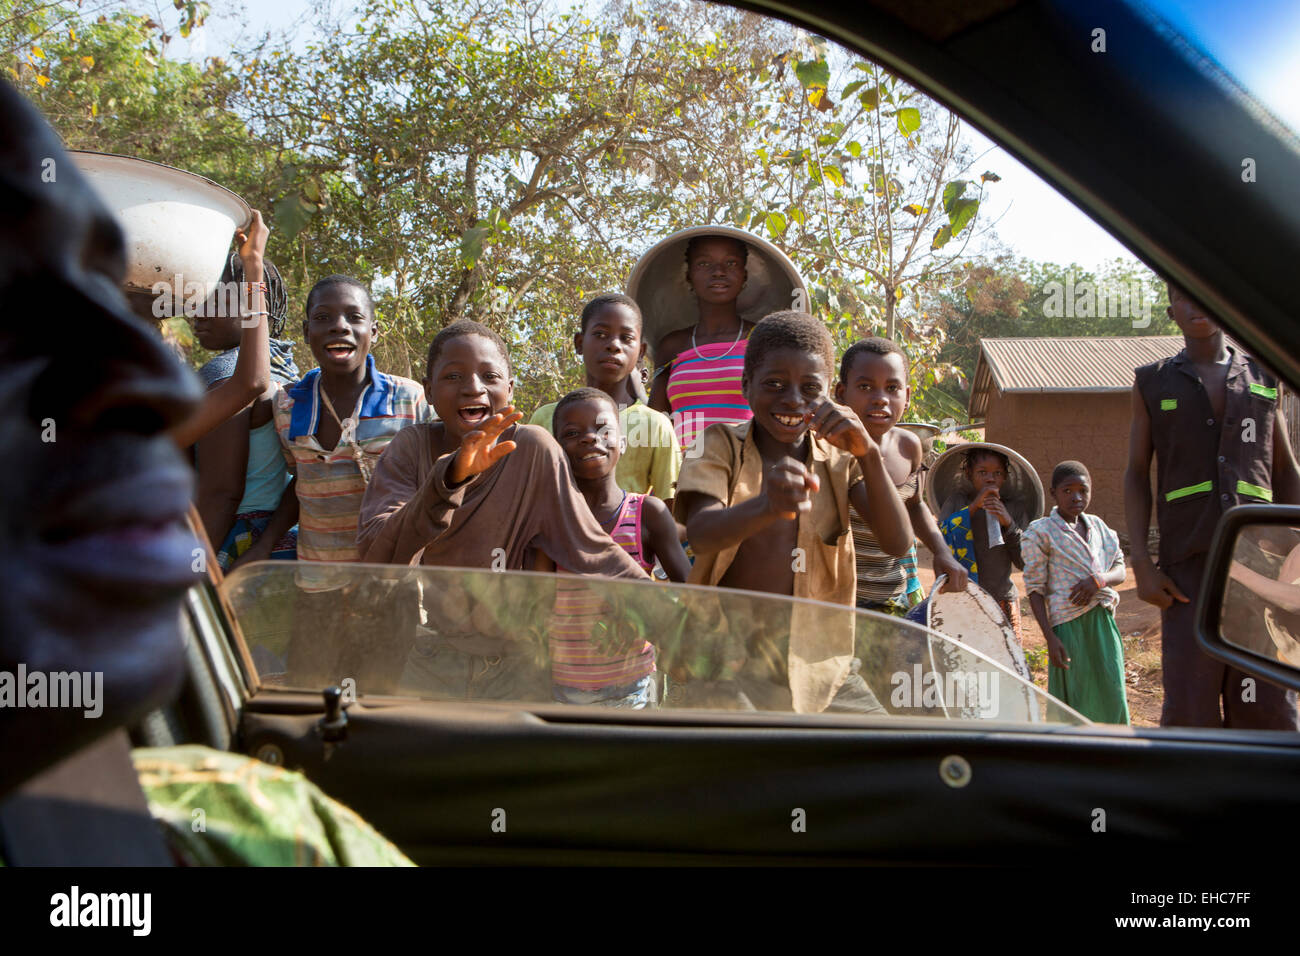 TOGO, 10th December 2012; Children on their way to school.   Photo by Mike Goldwater Stock Photo